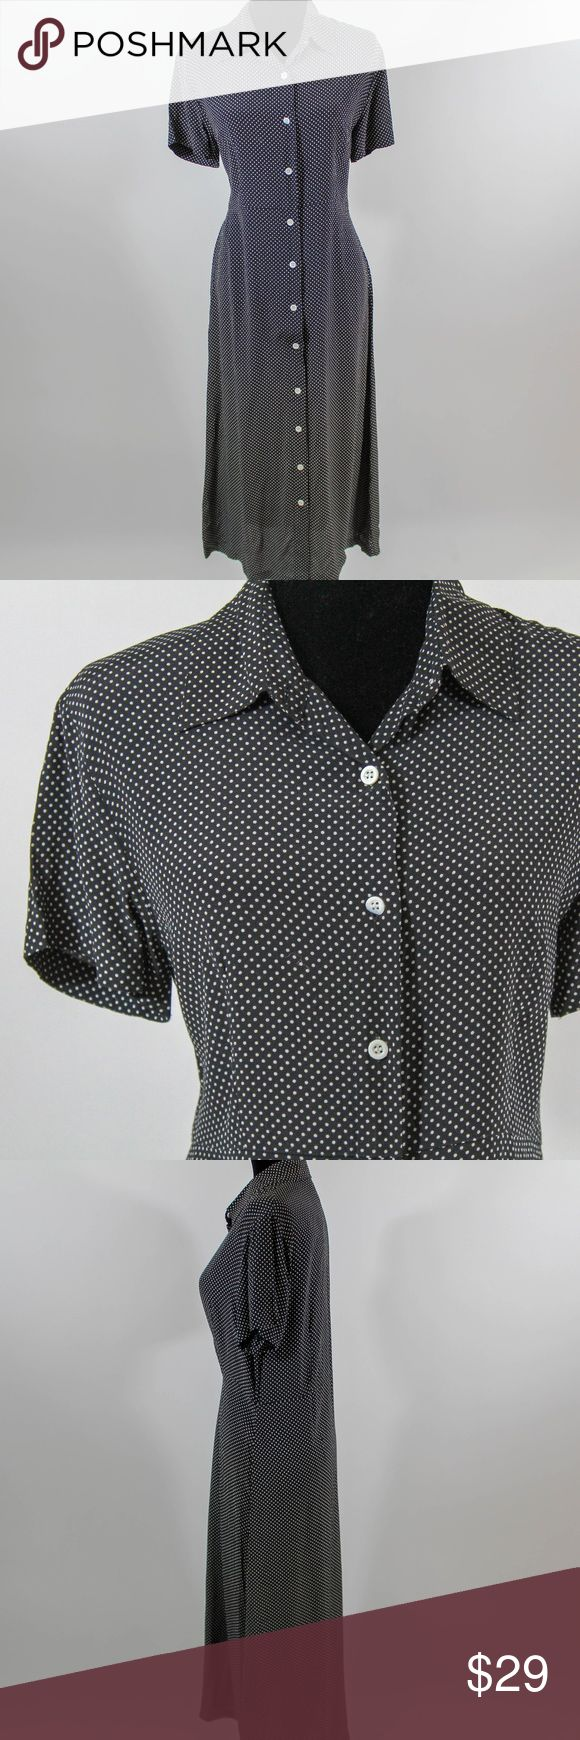 Style & Co Short Sleeved Polka Dot Maxi Dress sz 8 Rayon short sleeved maxi dress by Style & Co. - black with white polka dots.  Buttons up all the way - one of the buttons has a small chip (pictured).  About 49 inches long, 19 inch chest, 18 inch waist.  Classy vintage look!  Sz 8 (B10) Style & Co Dresses Maxi